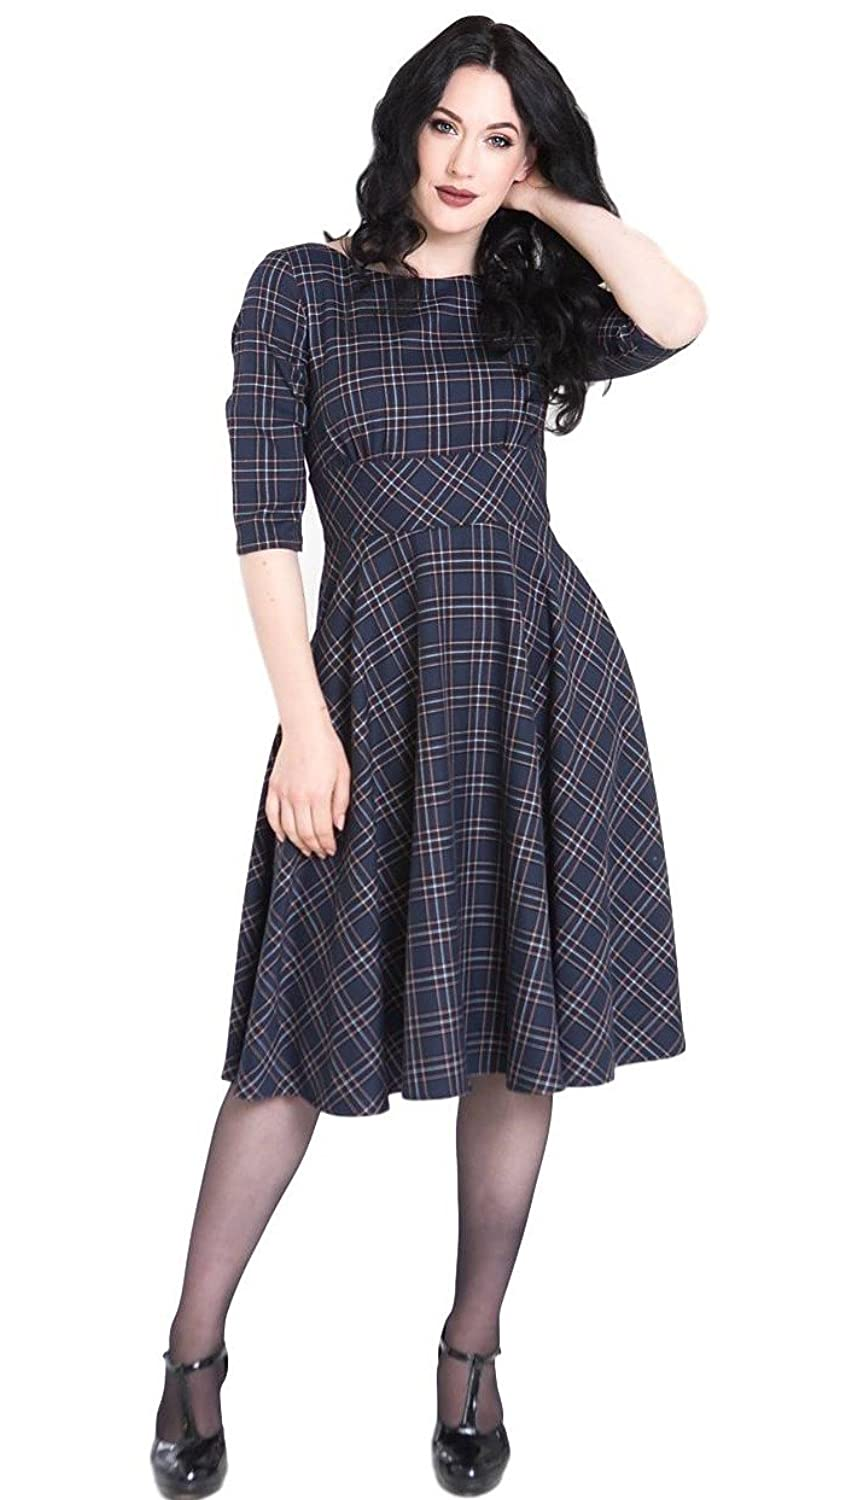 1950s Housewife Dress | 50s Day Dresses Hell Bunny Peebles Tartan 1950s Vintage Retro Dress $74.99 AT vintagedancer.com